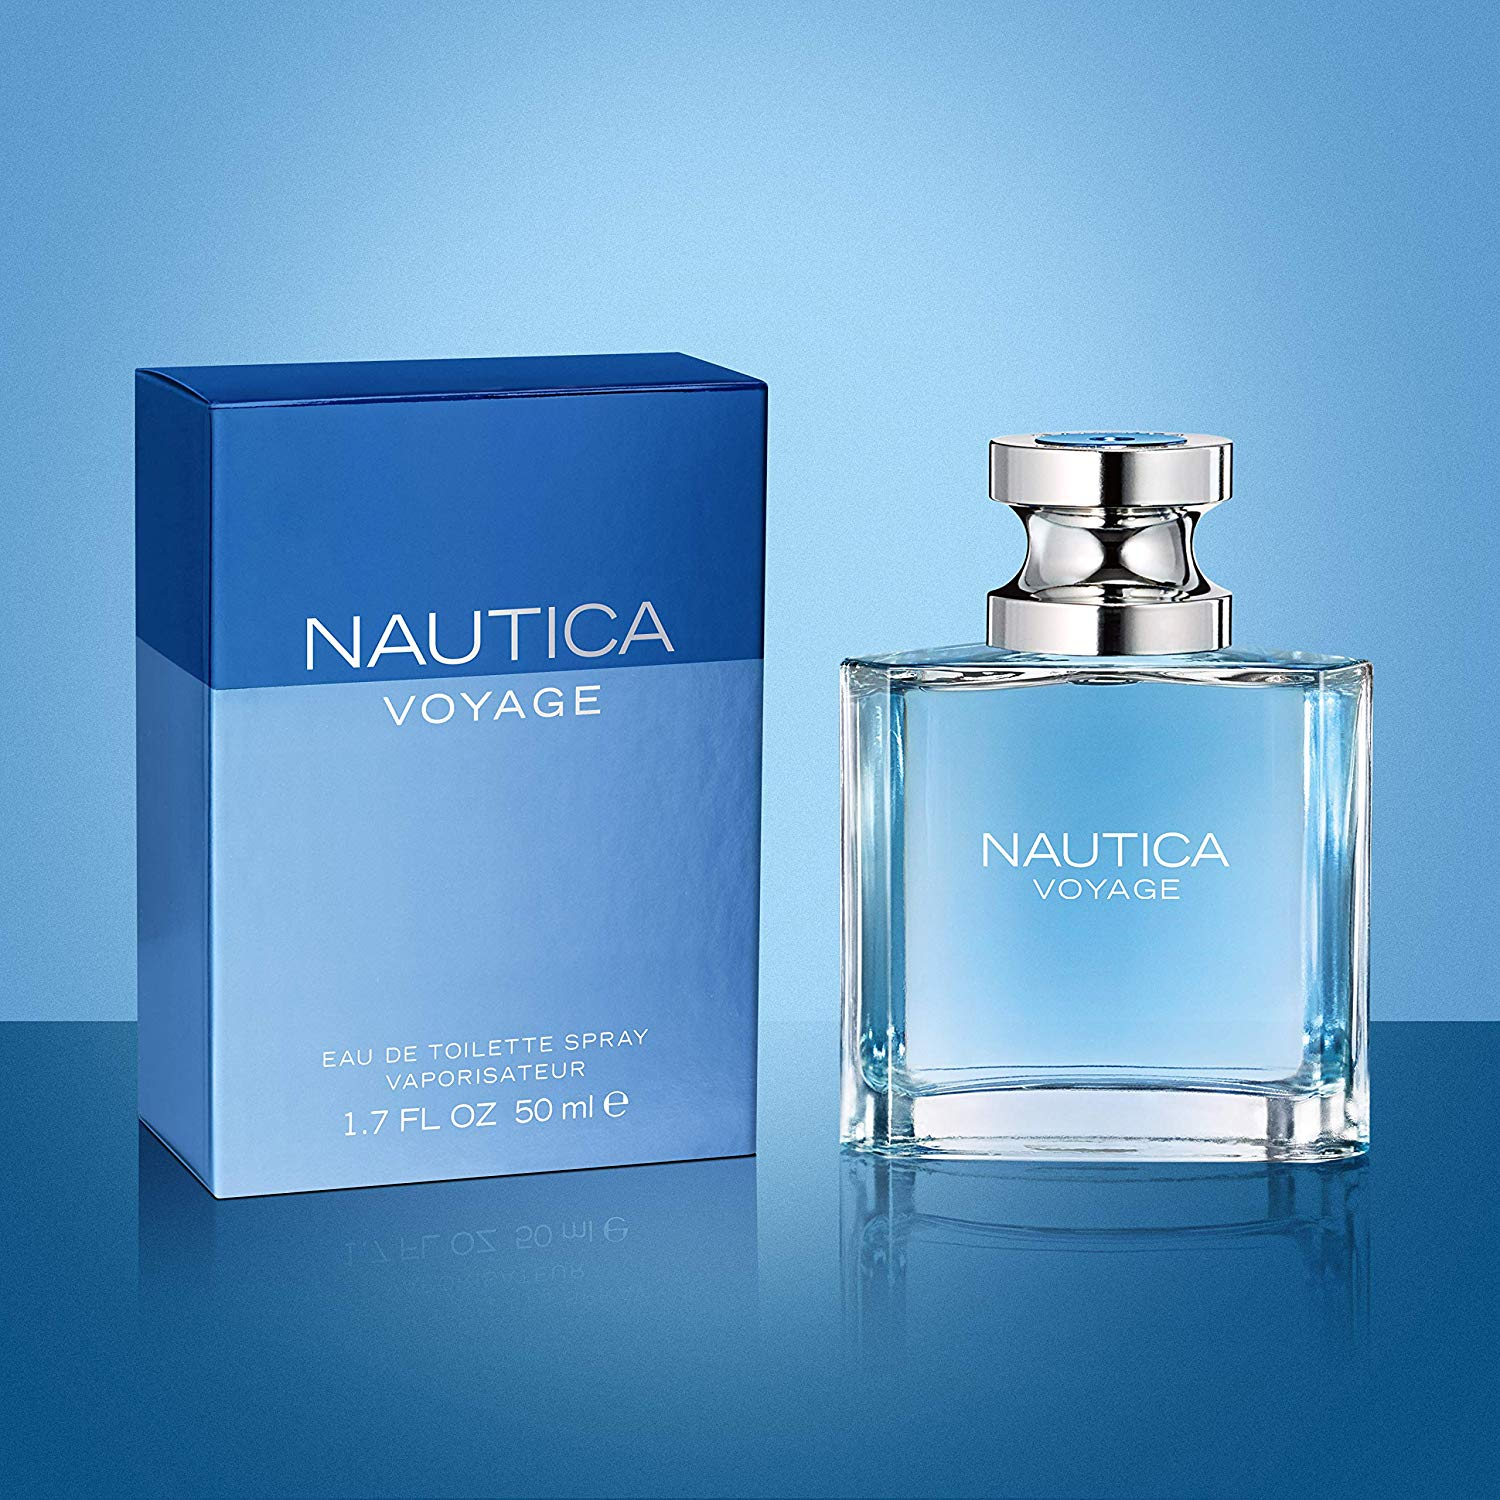 One of The Top 10 Colognes for Men 2021